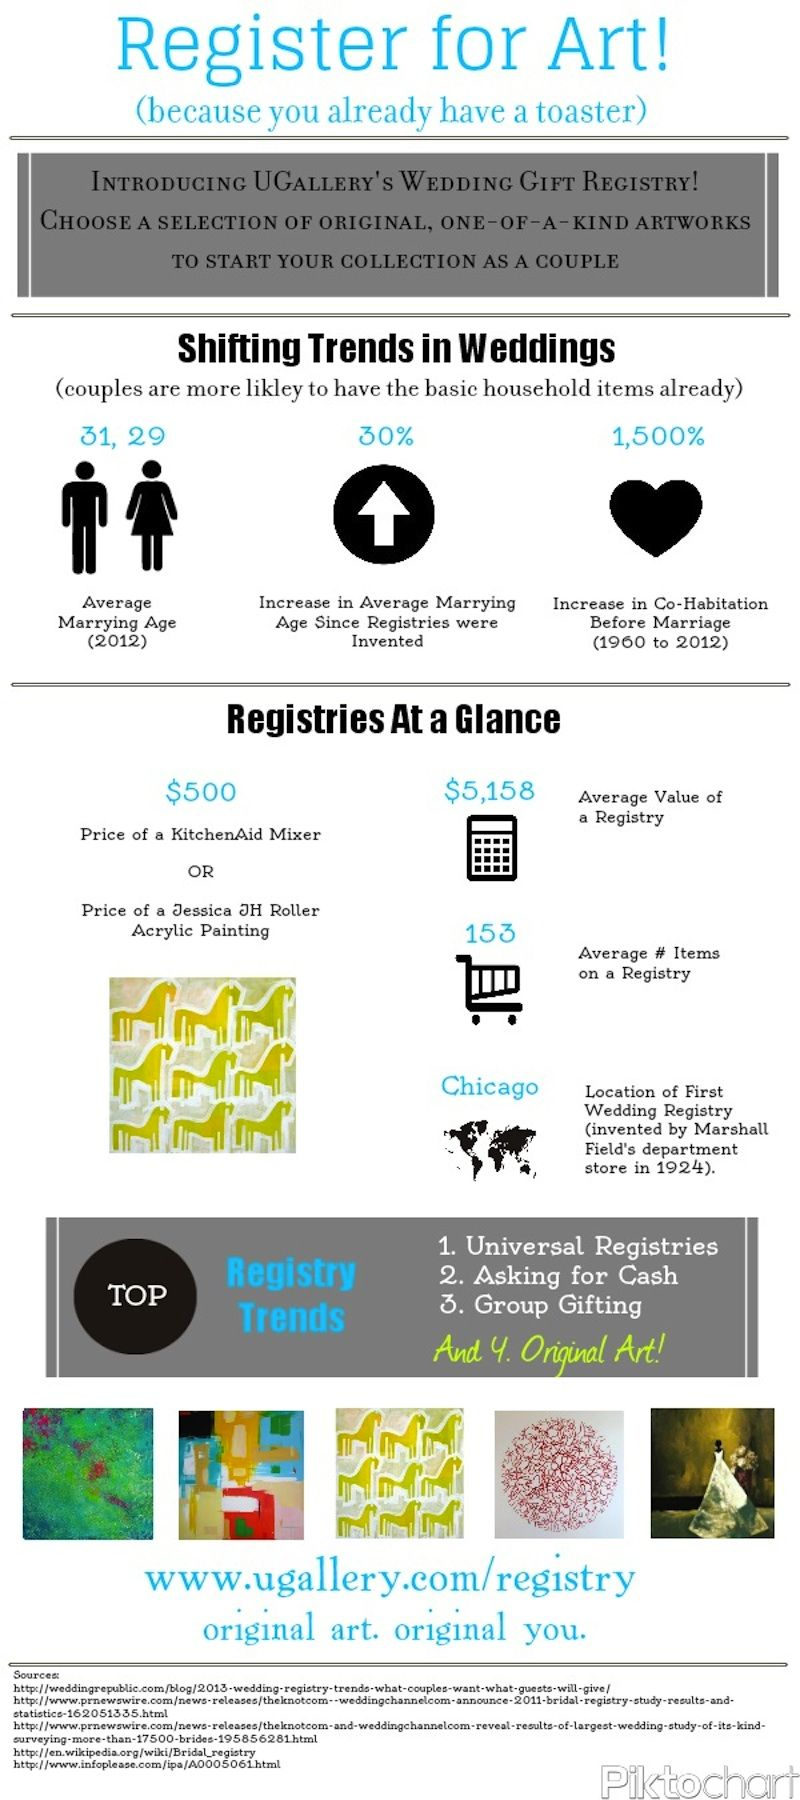 UGALLERY BLOG • Make Your Wedding Artful Infographic (With